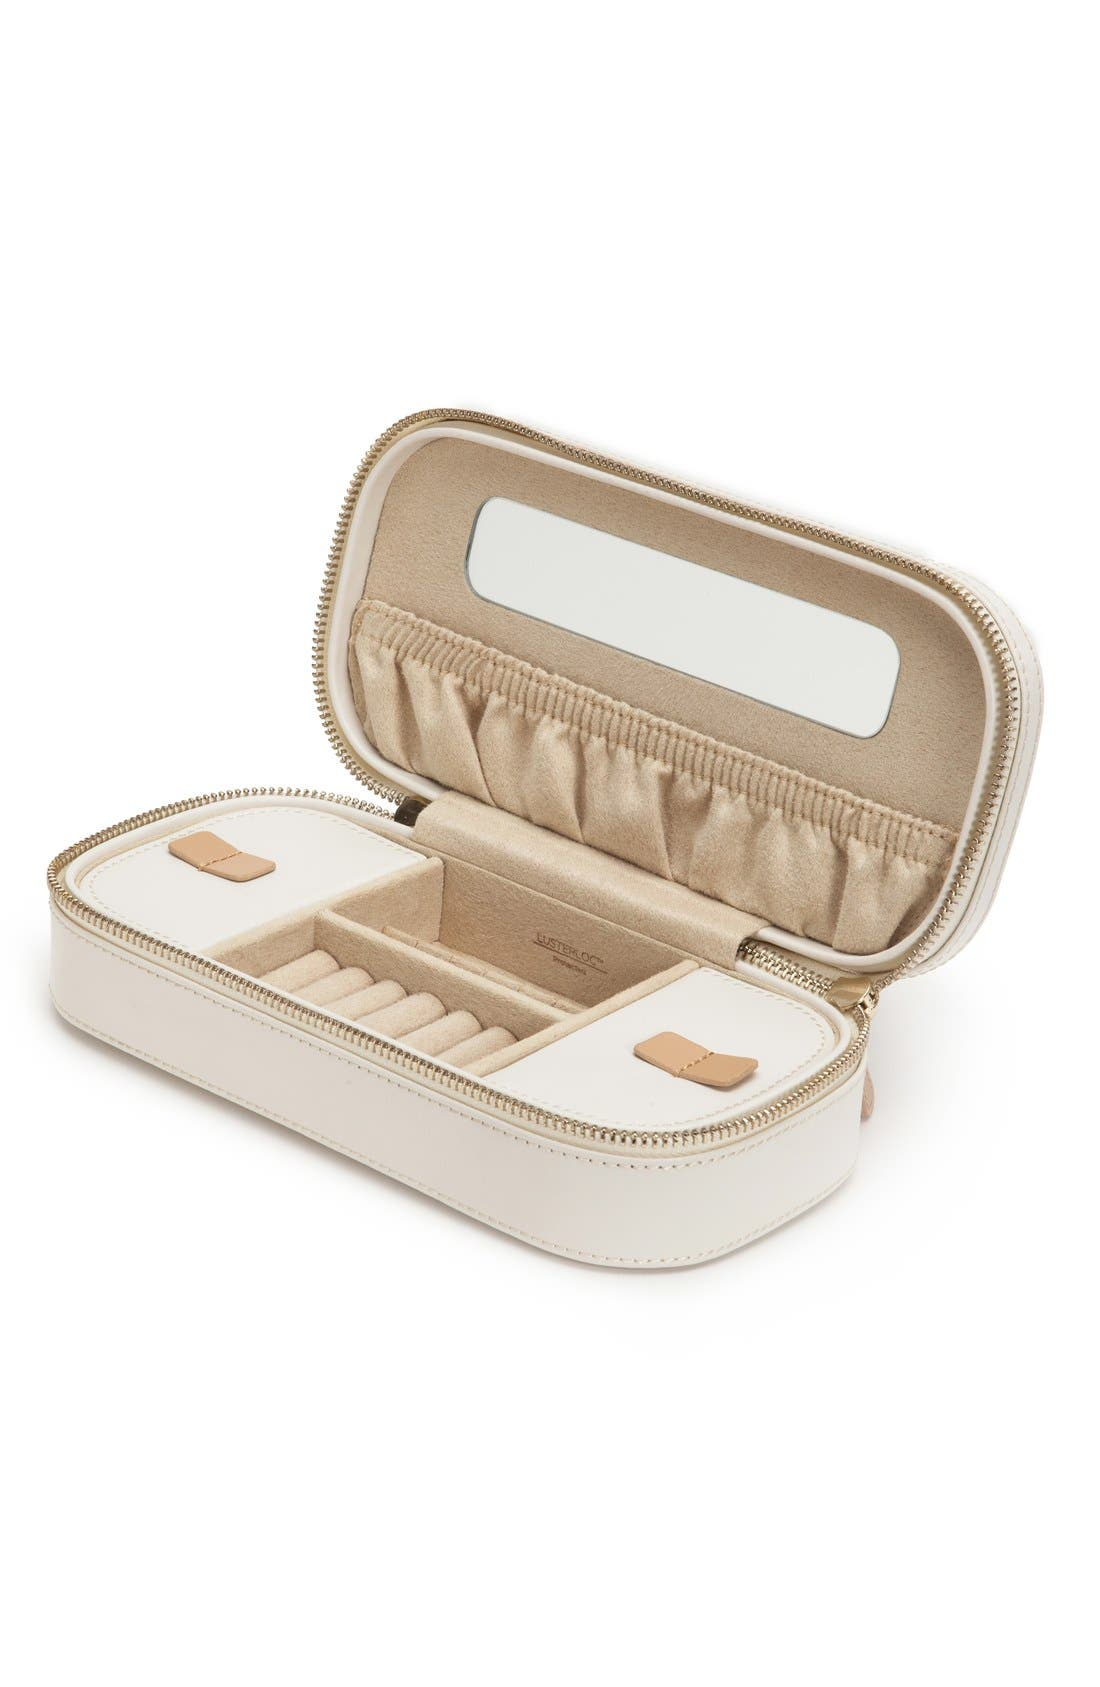 'Chloe' Zip Jewelry Case,                             Main thumbnail 1, color,                             900